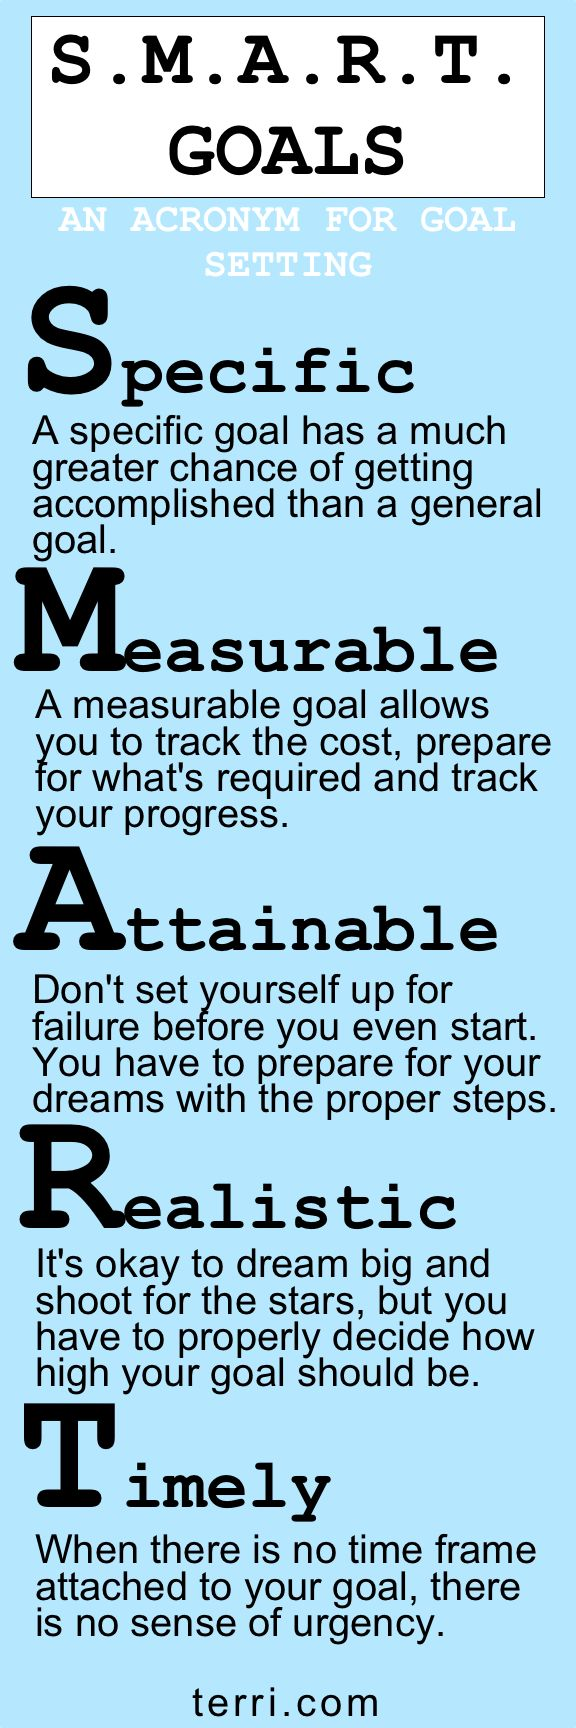 "A popular acronym for goal setting is ""S.M.A.R.T."" which means: Specific, Measurable, Attainable, Realistic and Timely. When setting goals, use this acronym as a guide to set the right goals for you. For more motivational quotes / teachings and success tips visit terri.com"